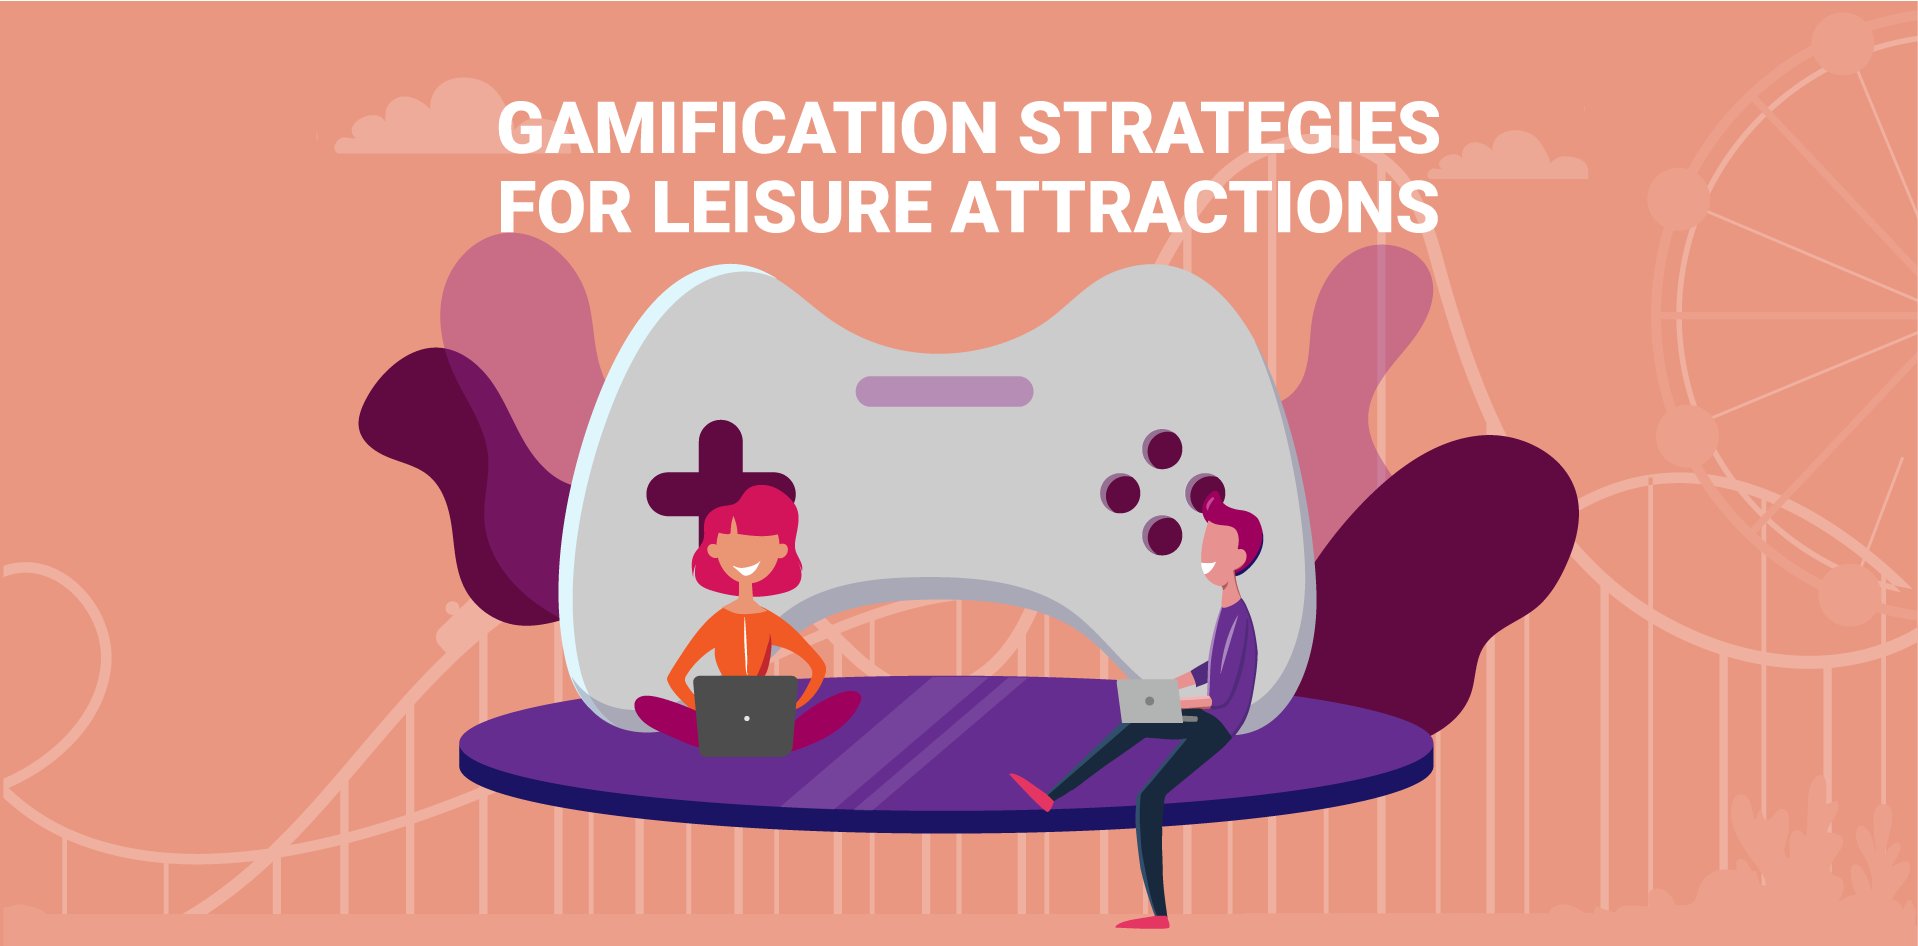 How to implement gamification strategies in your leisure attraction